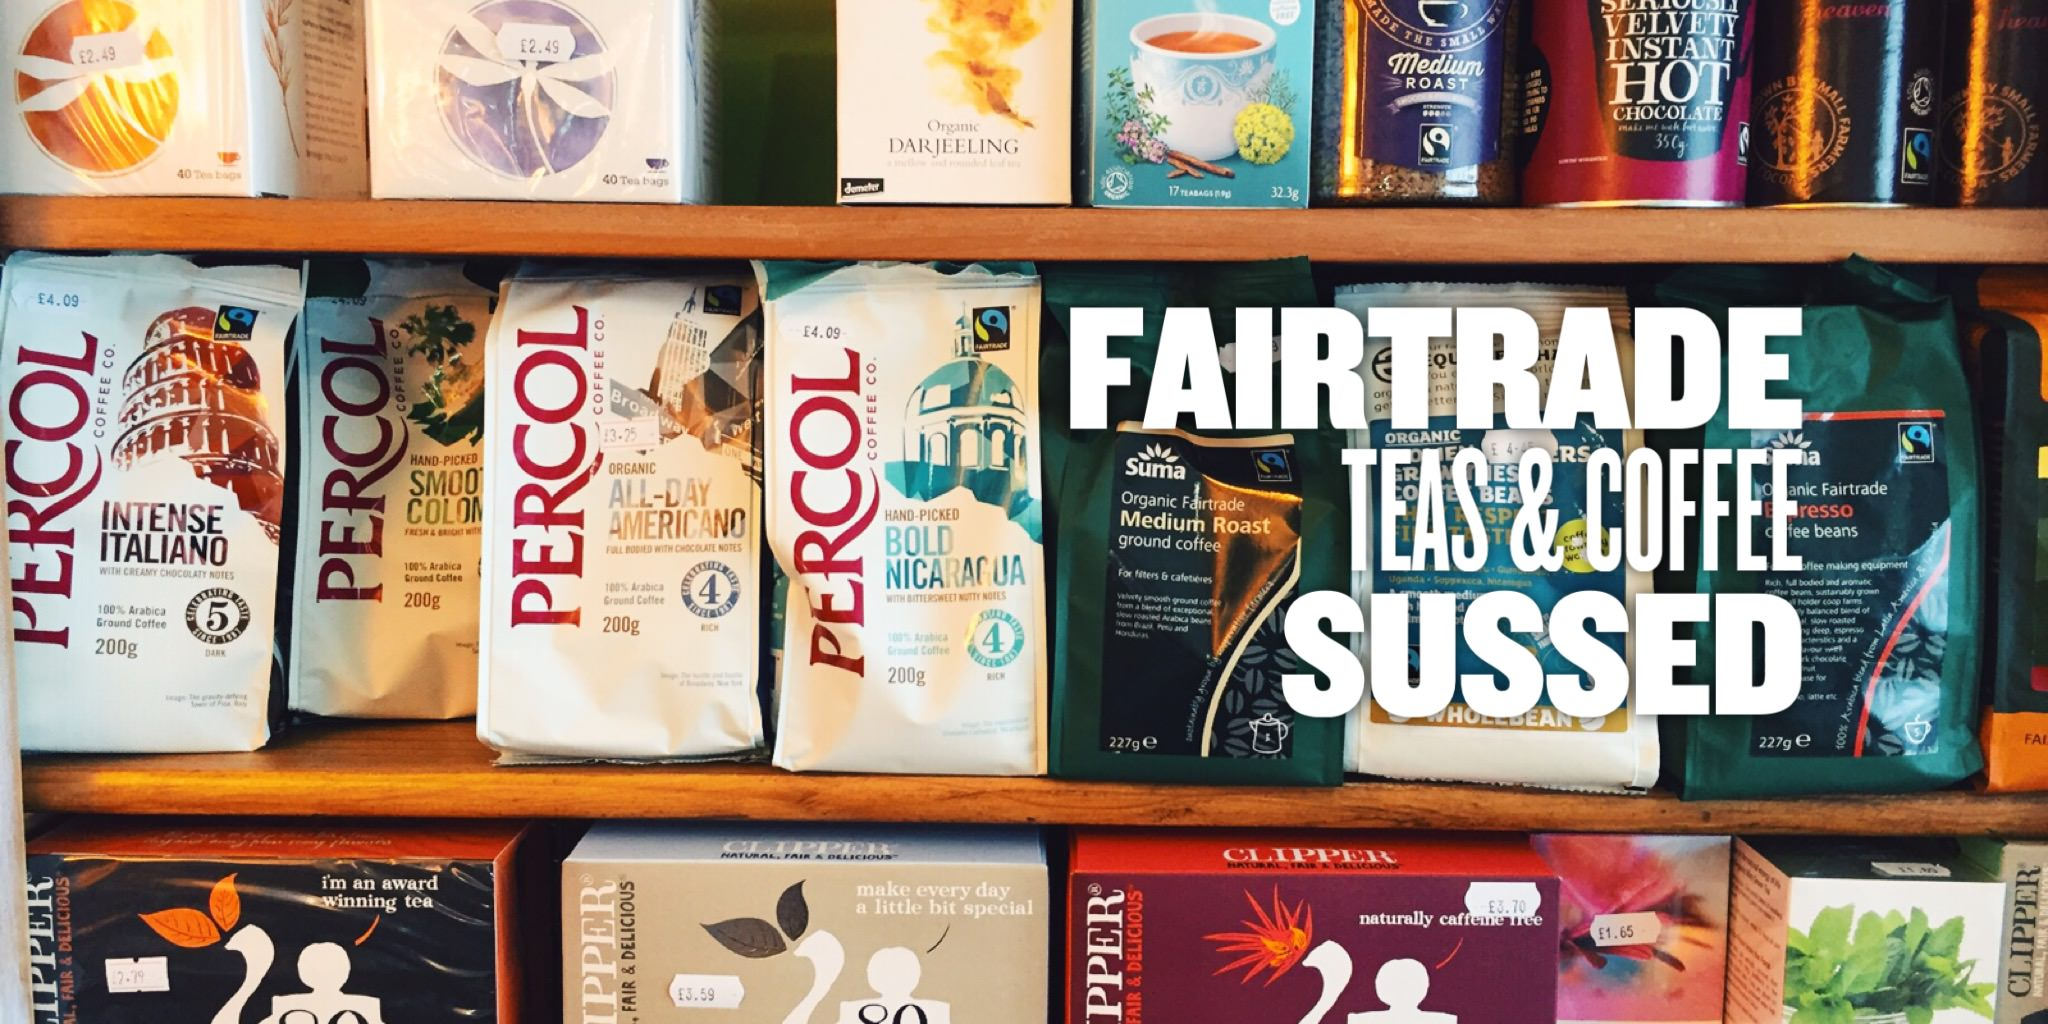 fairtrade tea coffee display.jpg